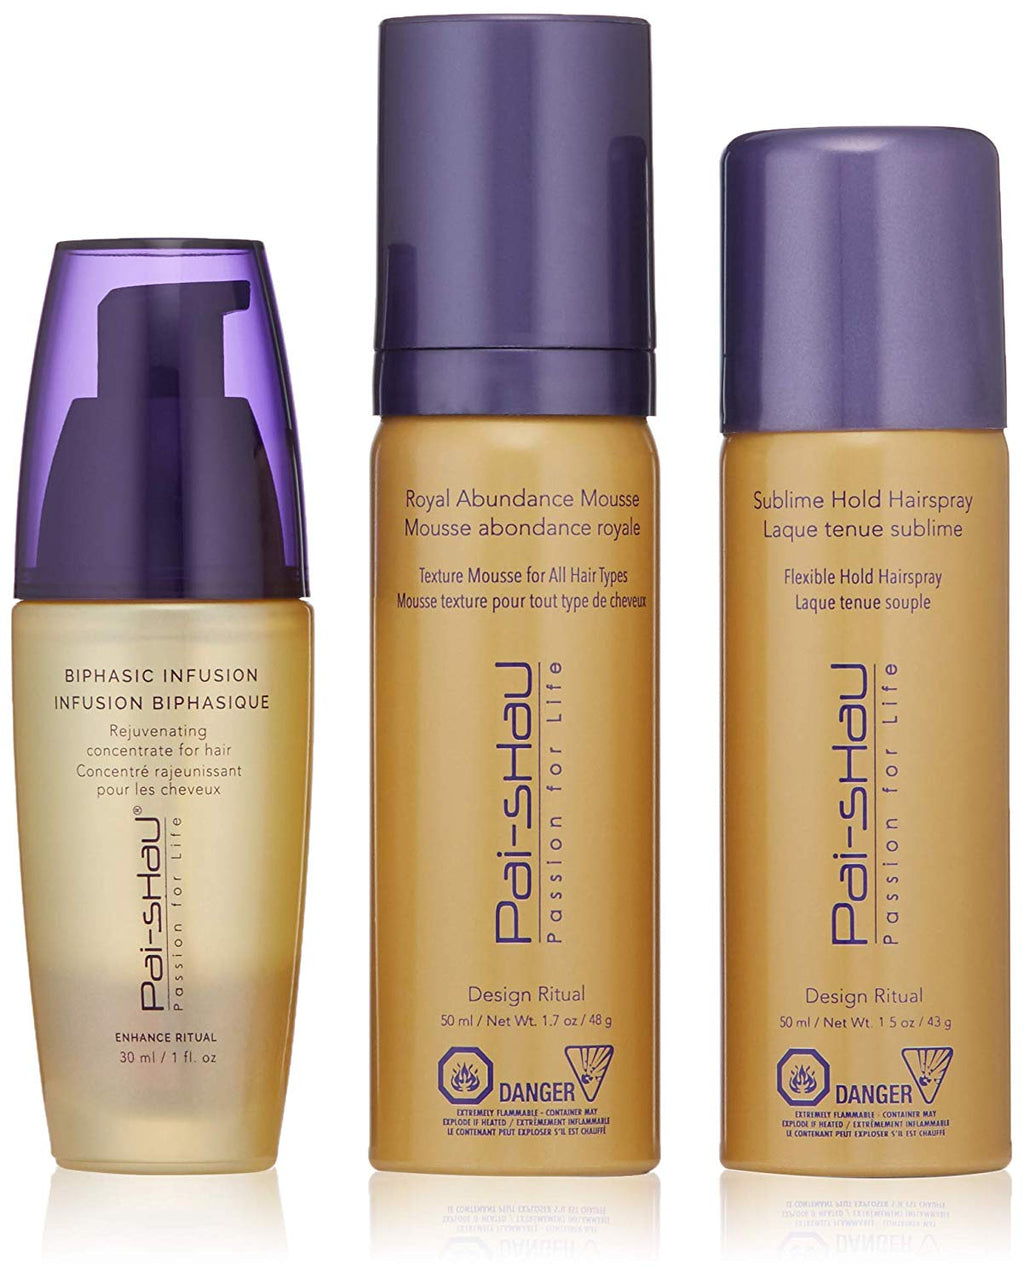 PAI SHAU GIFT DESIGN RITUAL 3 PIECEBiphasic Infusion 1 fl.oz Royal Abundance Mousse 1.7 fl.oz Sublime Hold Hairspray 1.5 fl.oz